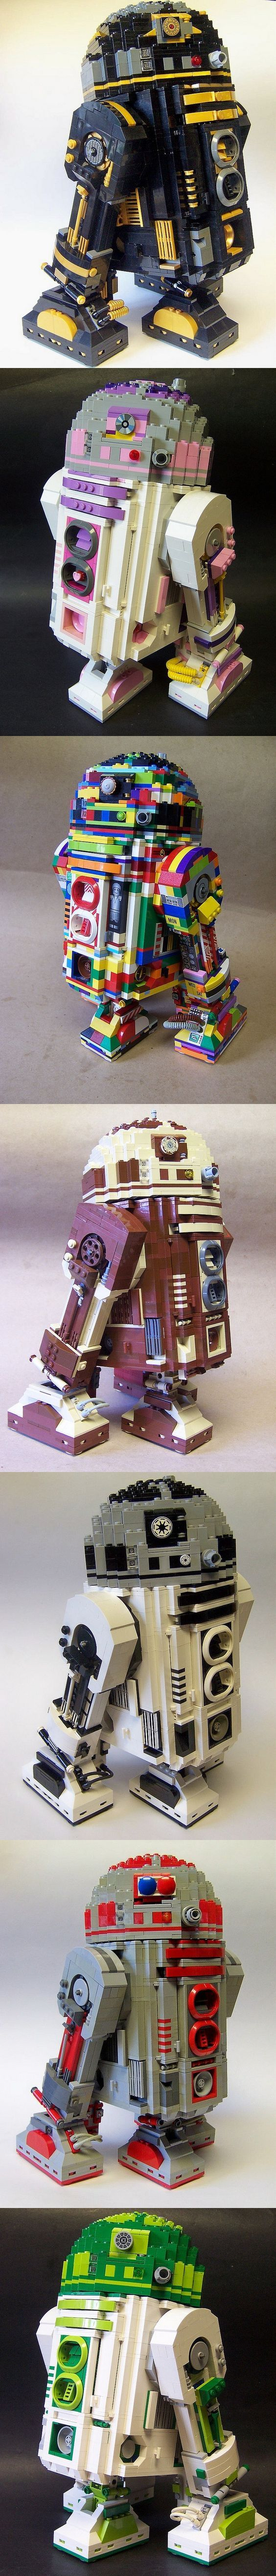 10 Star Wars Lego Pictures to Nerd Out On Check more at http://8bitnerds.com/10-star-wars-lego-pictures-to-nerd-out-on/